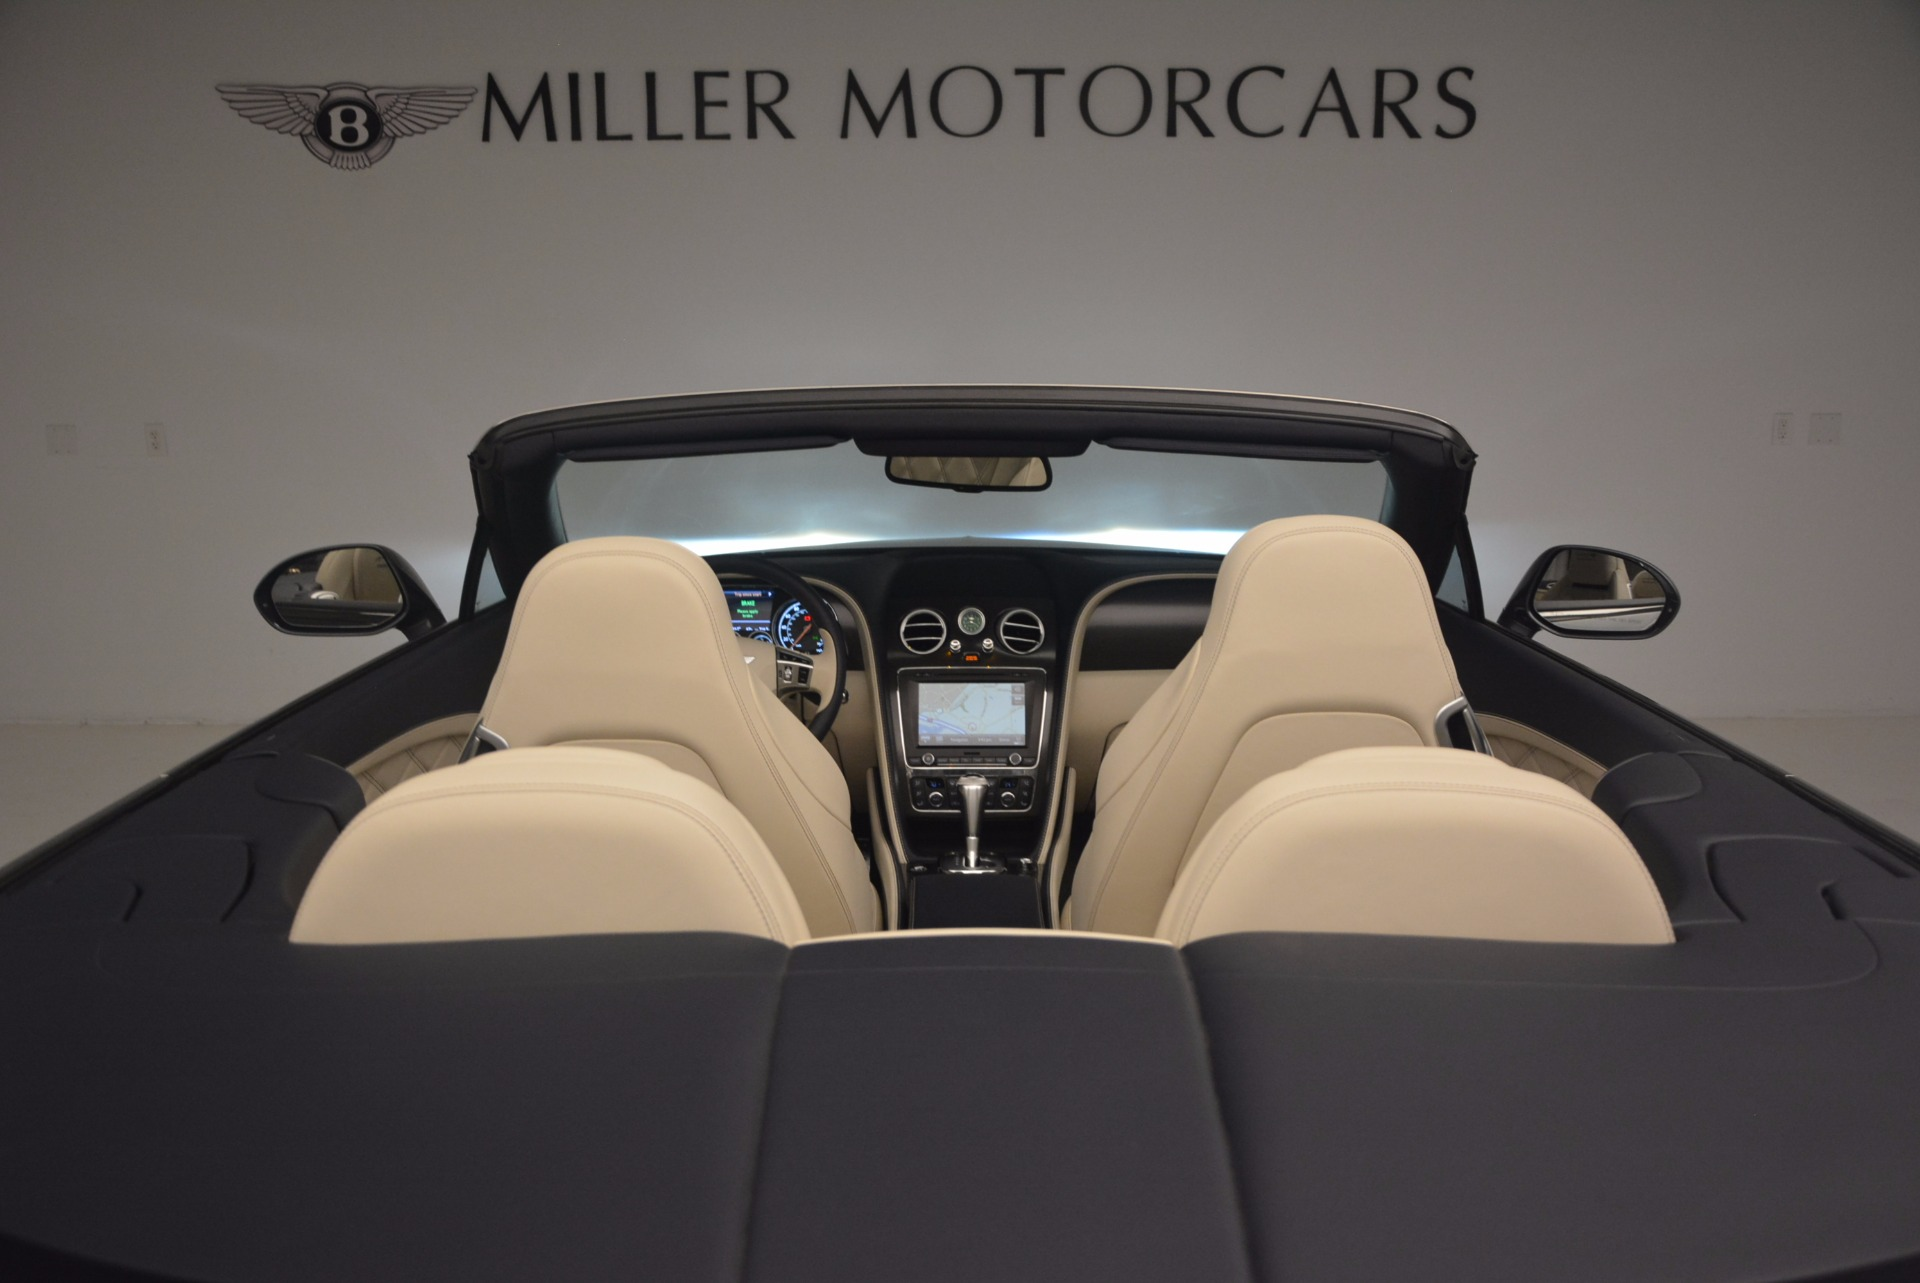 Used 2013 Bentley Continental GT V8 Le Mans Edition, 1 of 48 For Sale In Greenwich, CT 1288_p54